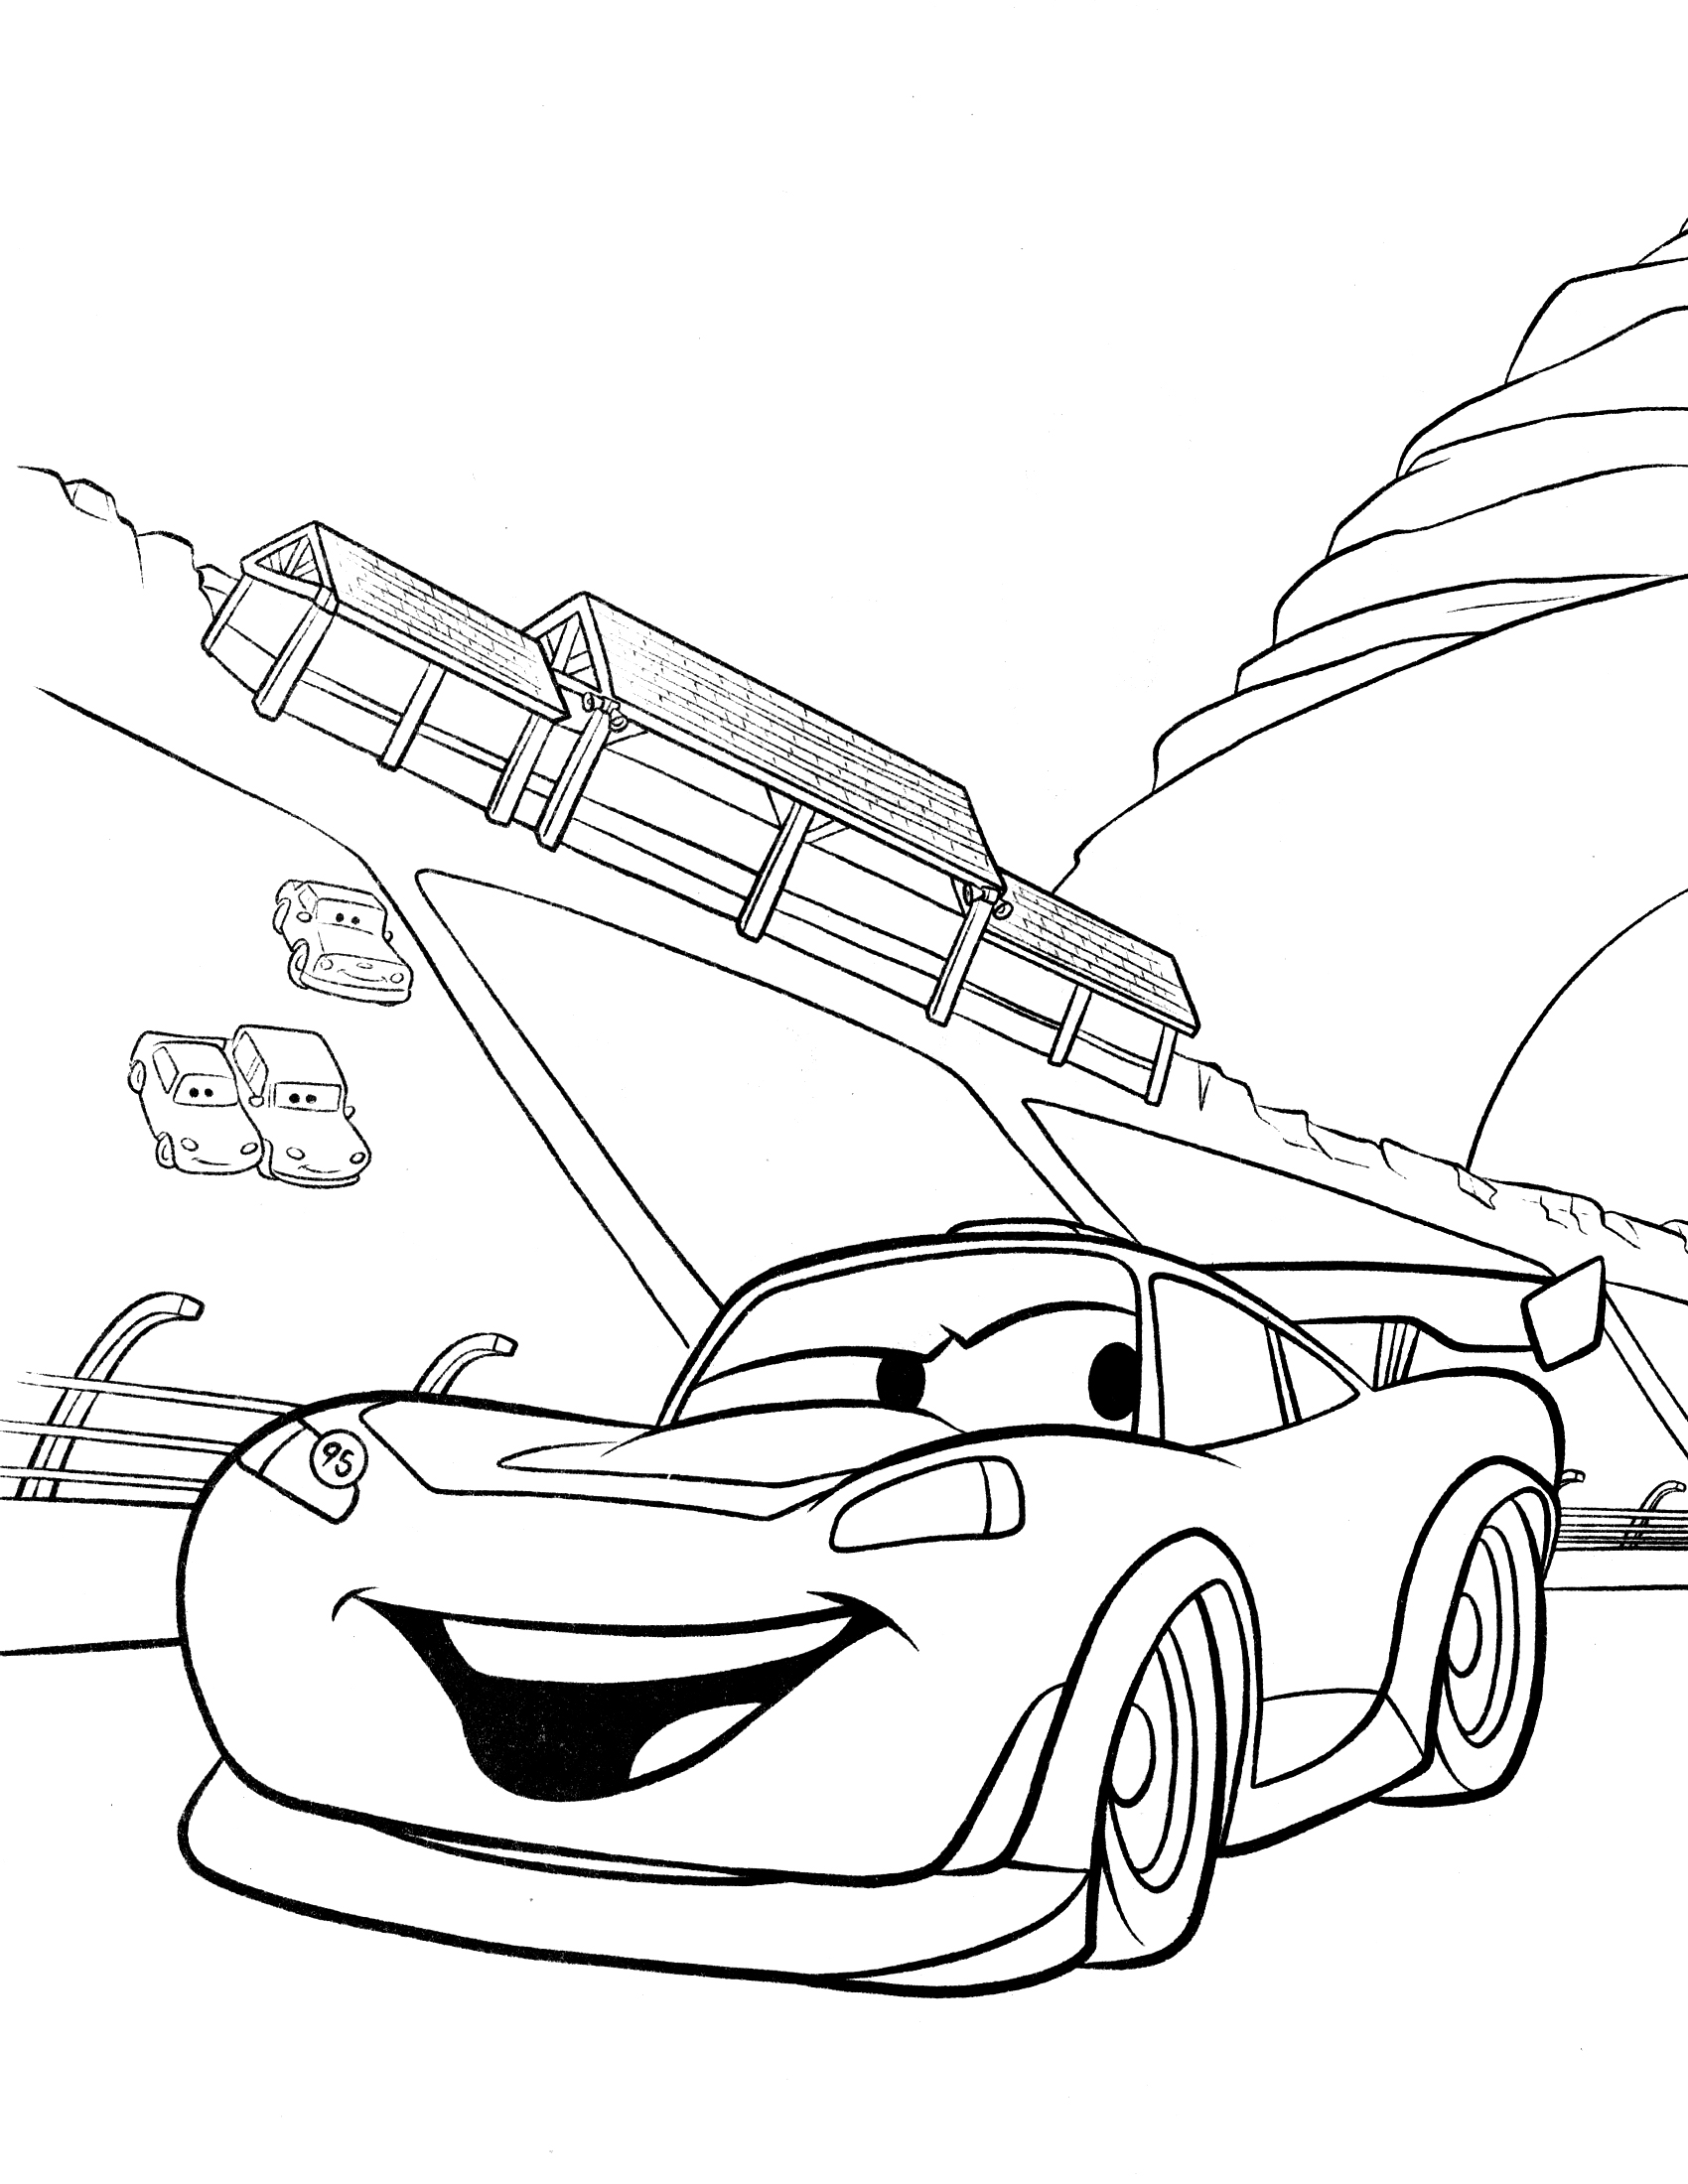 1700x2200 Police Car Drawing And Coloring Page Colouring Book Of A Cardinal